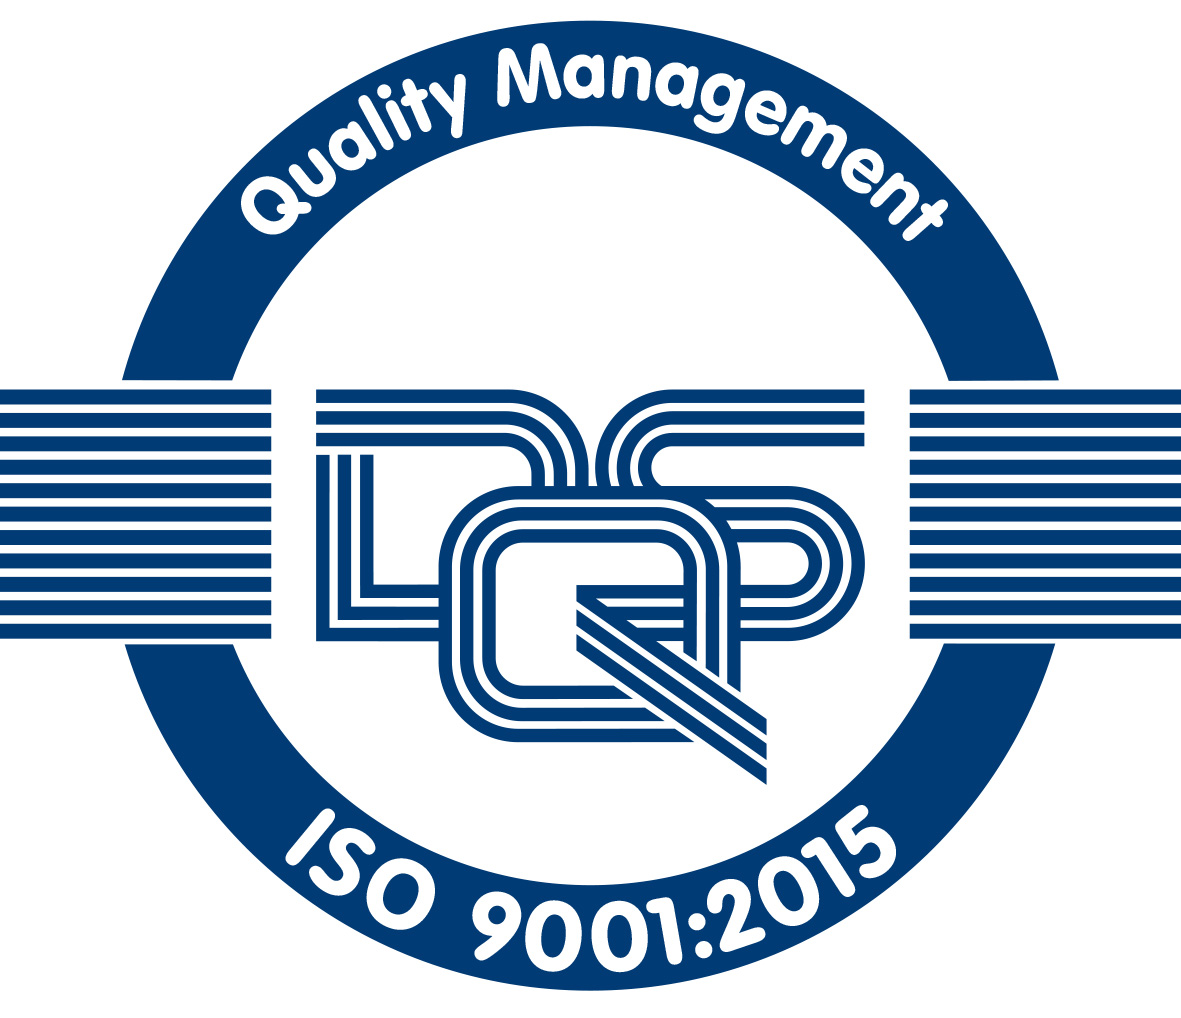 DQS Quality Management ISO 9001:2015